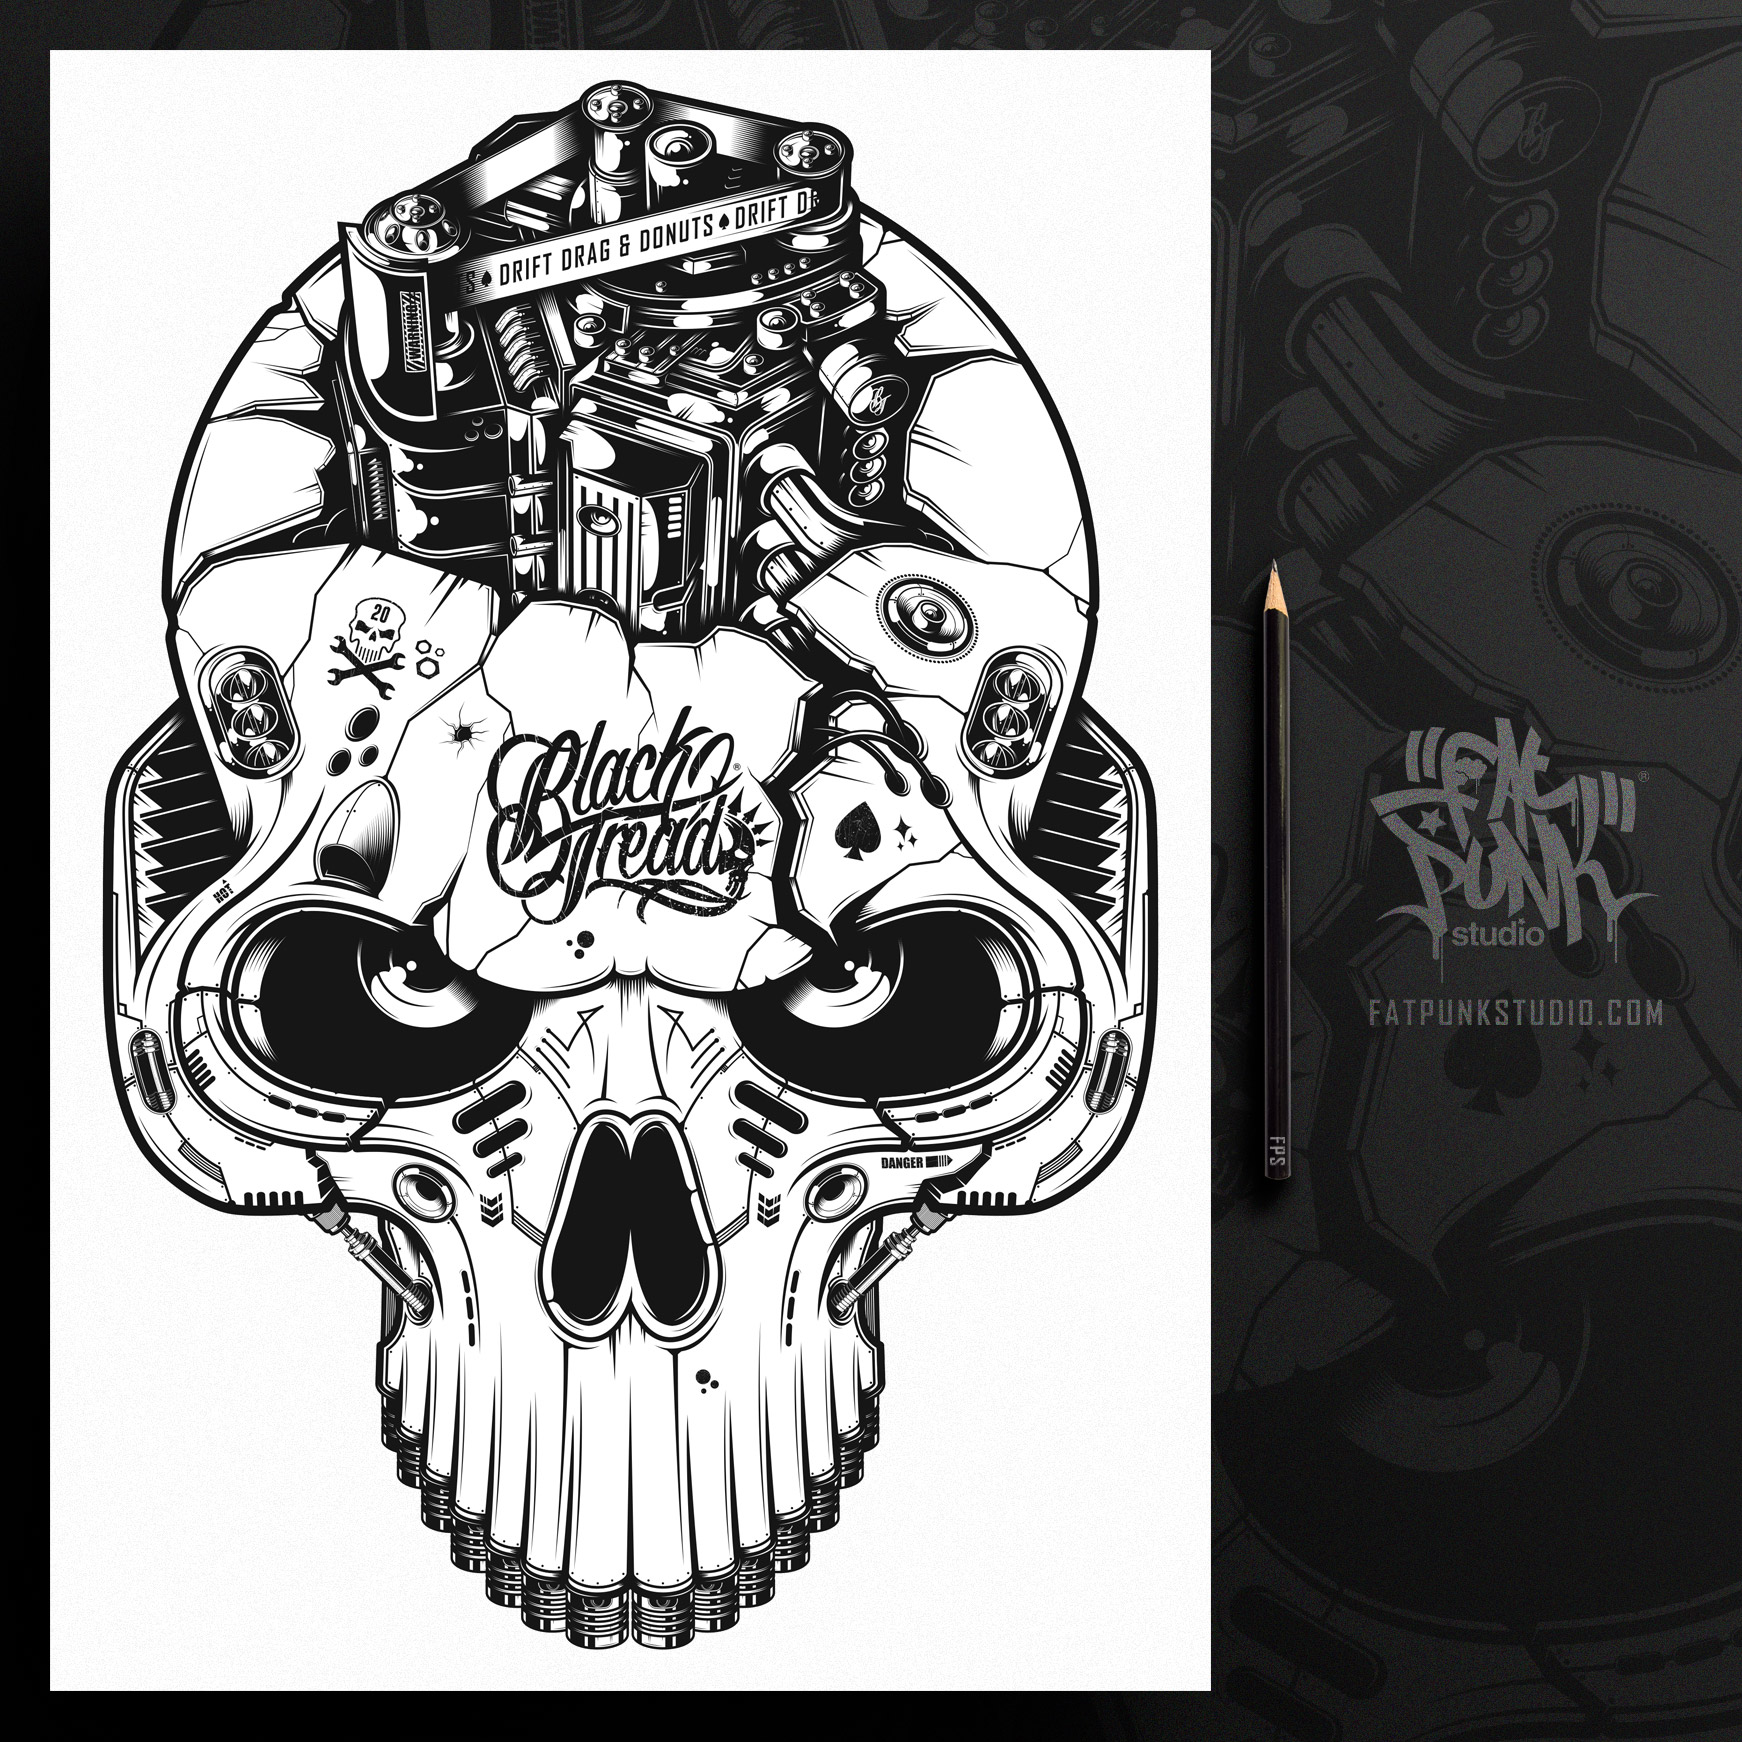 skull-illustration-art-black-tread-fat-punk-studio-02